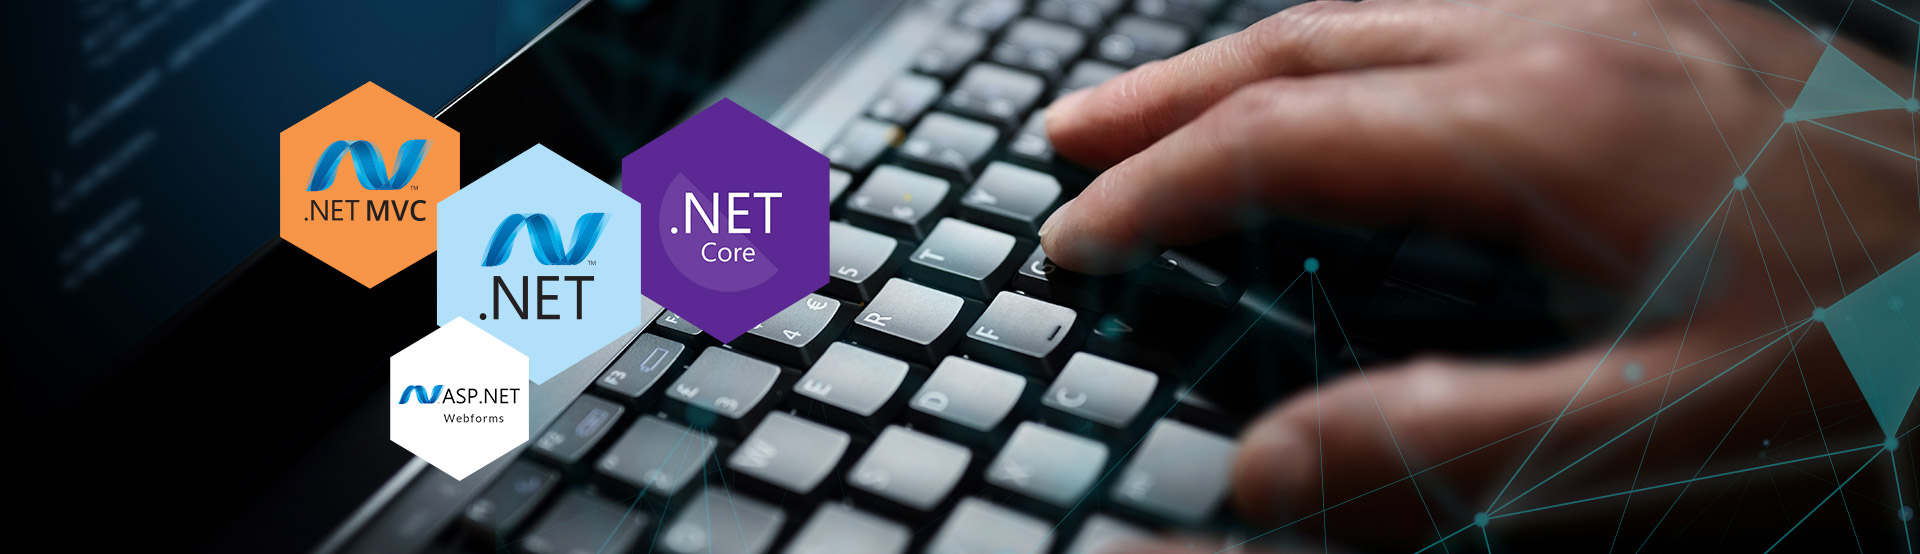 The Ultimate Guide To The Right DotNet Framework For Your Project